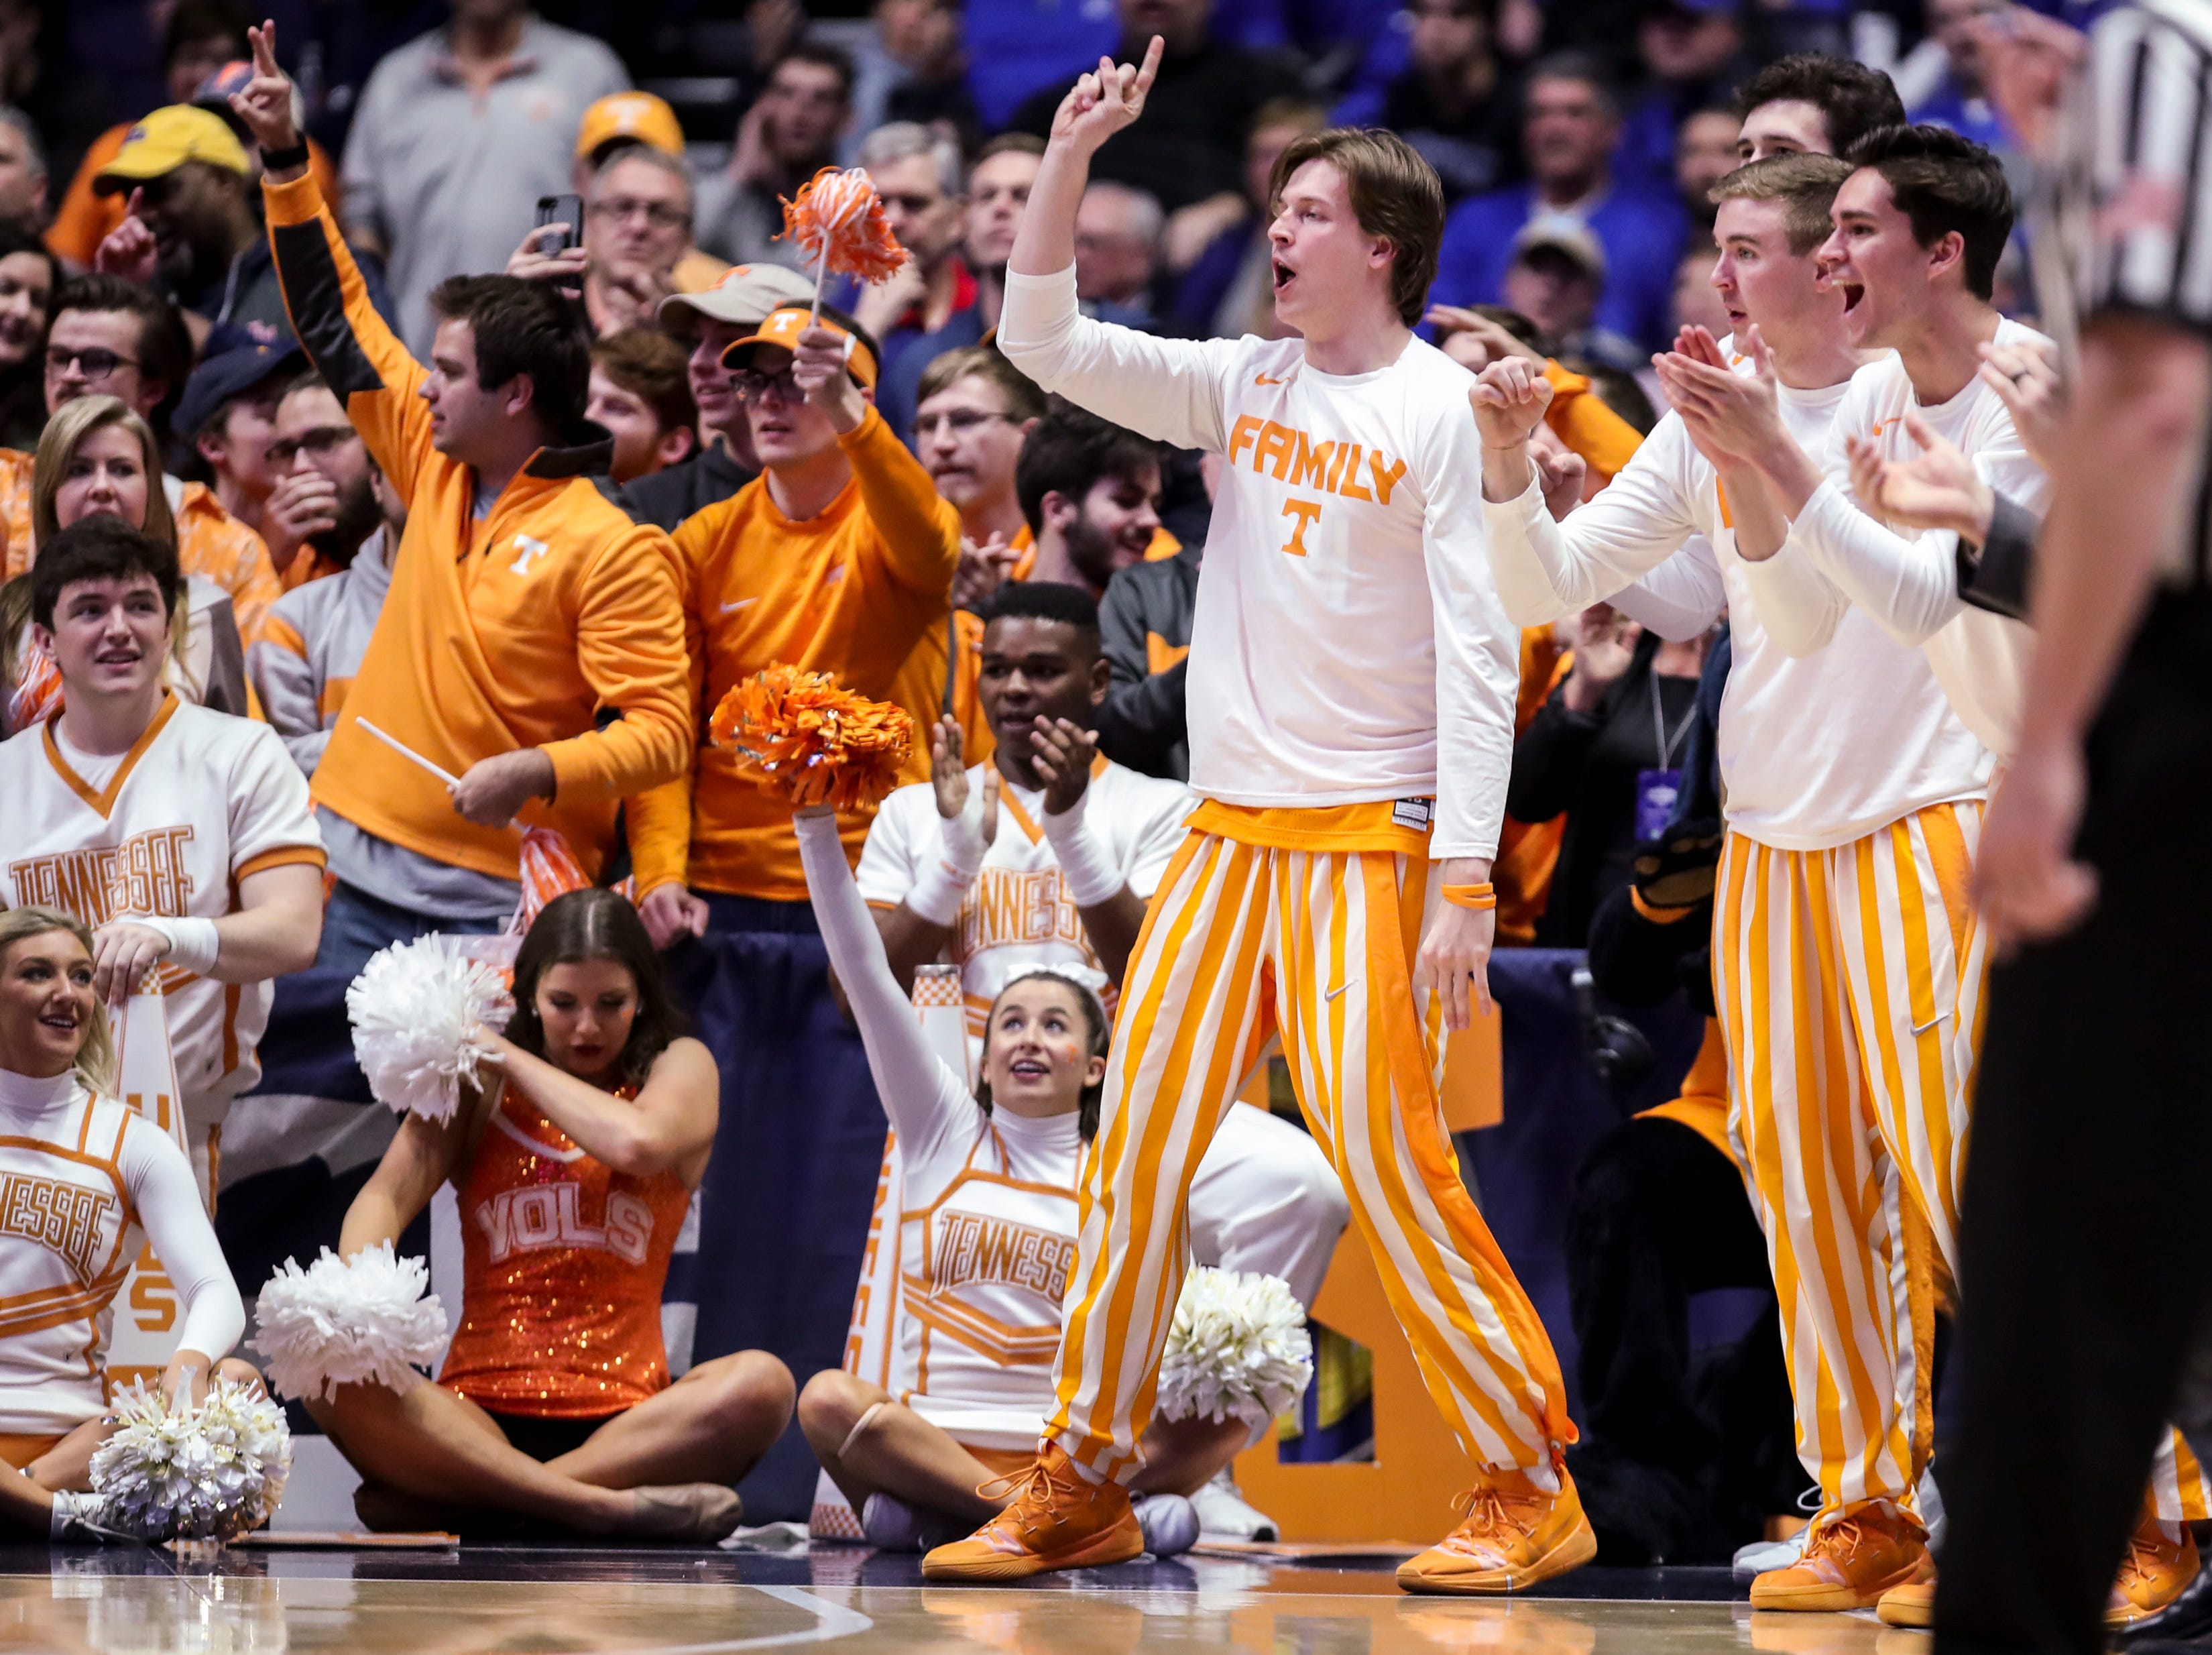 The Tennessee bench reacts during the second half of the SEC Men's Basketball Tournament semifinal game against Kentucky at Bridgestone Arena in Nashville, Tenn., Saturday, March 16, 2019.